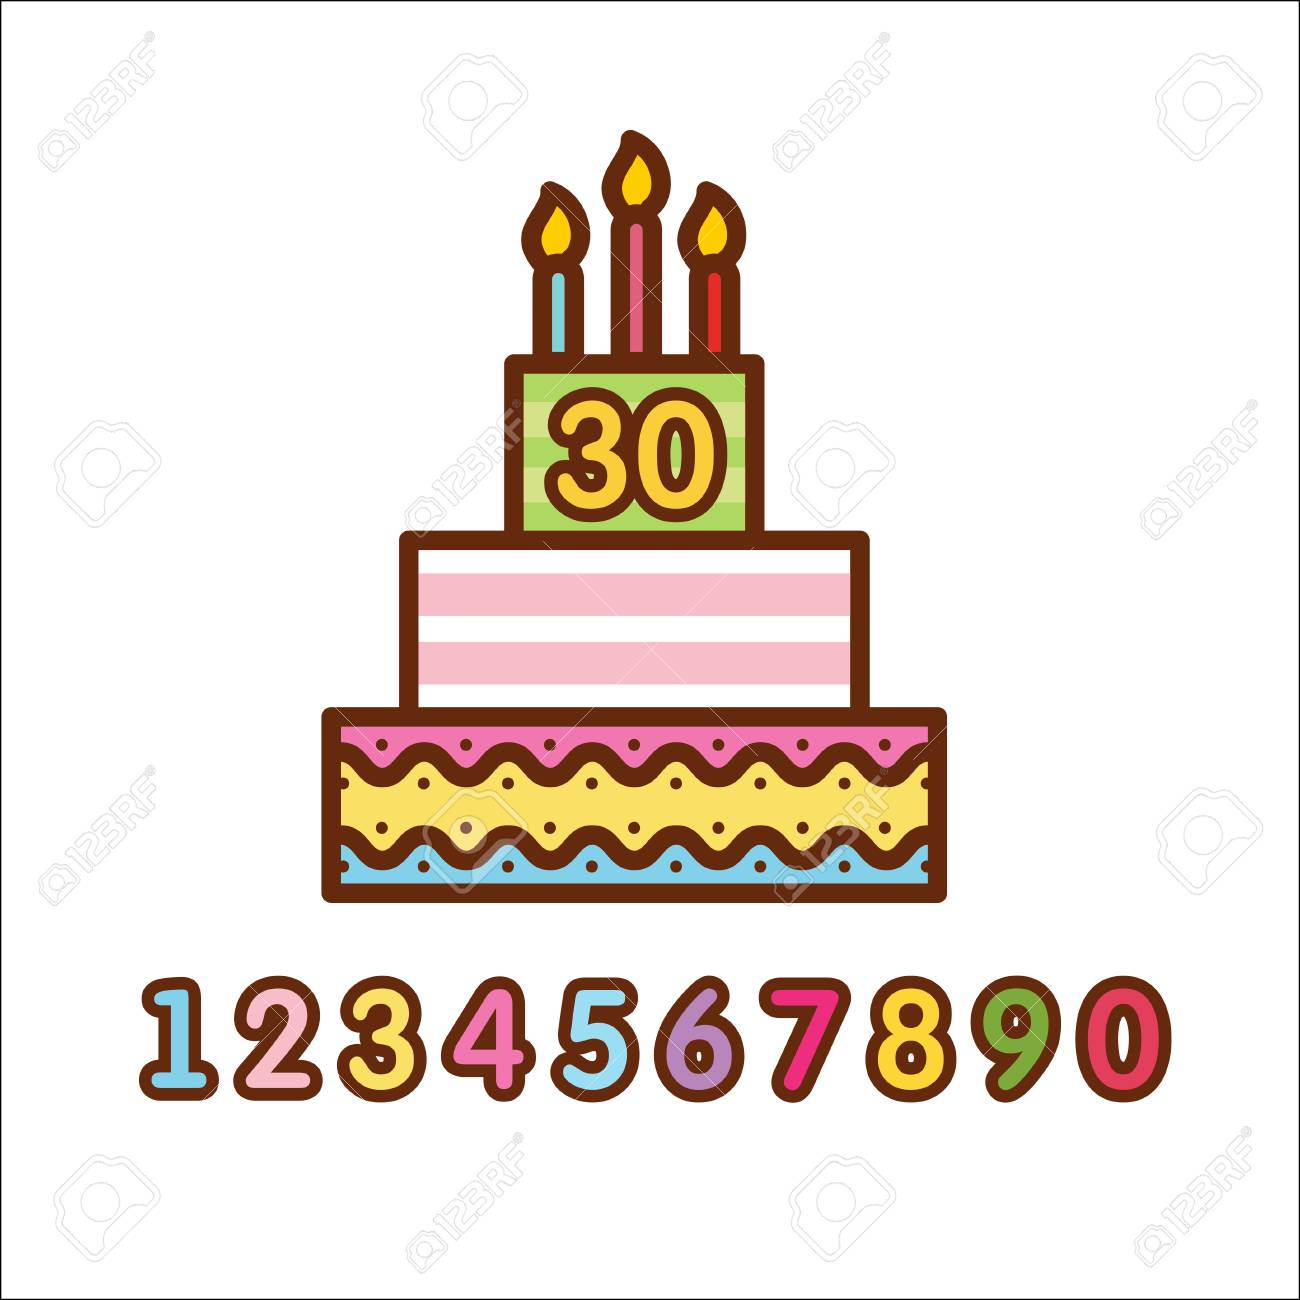 Cake Birthday Cake With Candles Vector Icon Royalty Free Cliparts